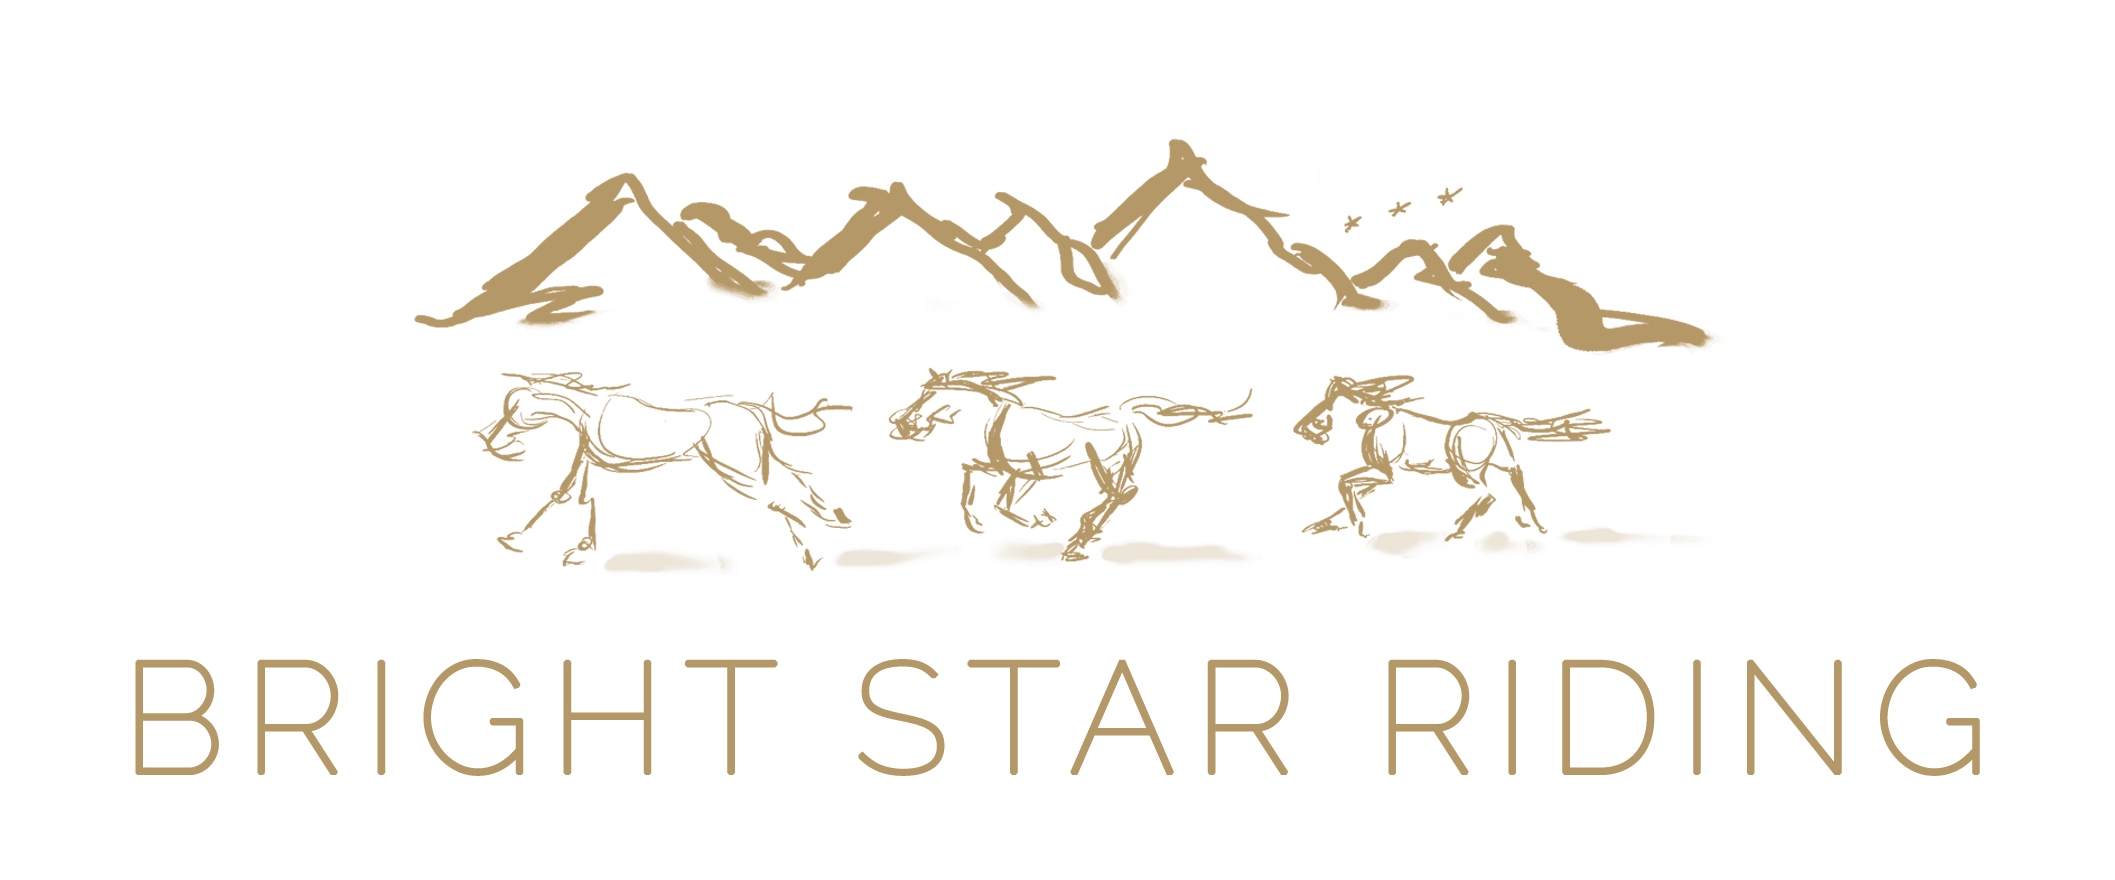 Bright-Star-Riding-FINAL-Logo.png